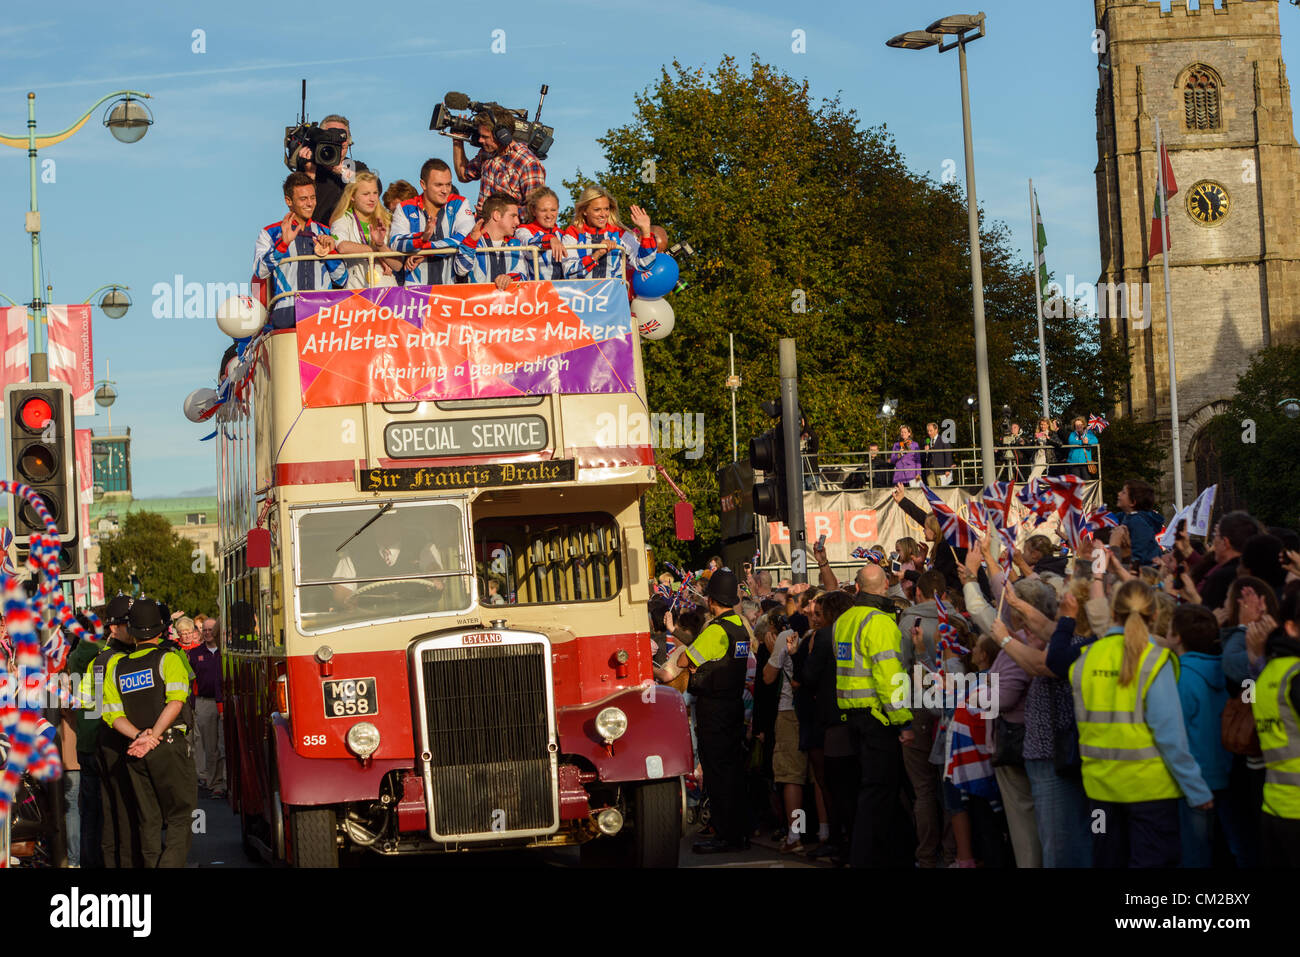 Plymouth, UK. 19/09/2012. An open top bus for Plymouth Olympians and Paralympians passes thousands of Plymouth people Stock Photo